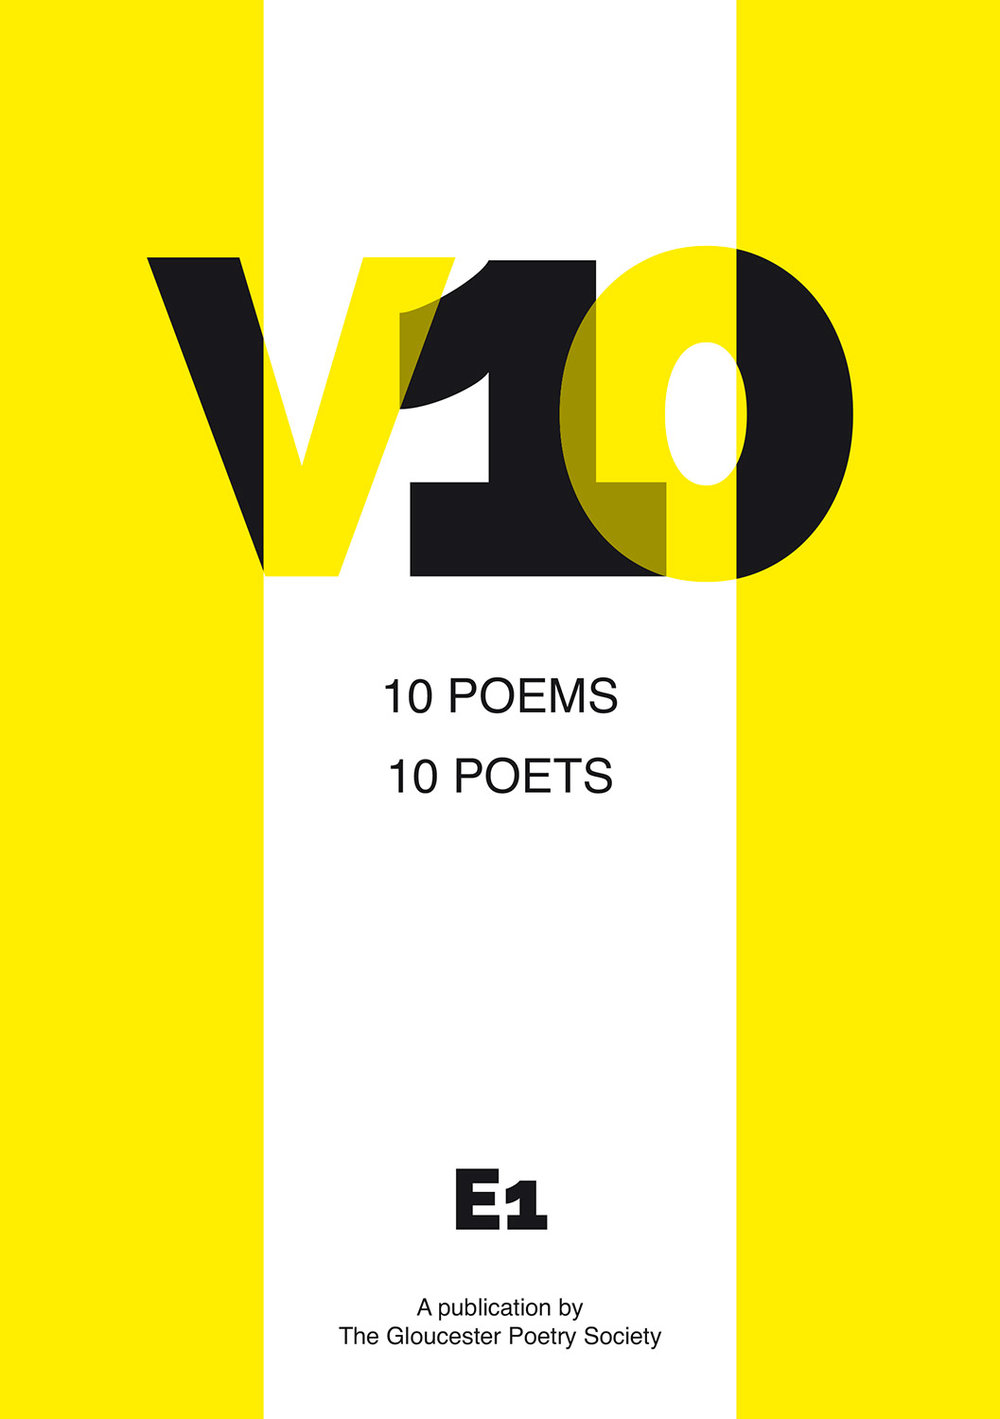 V10 Pamphlet Design